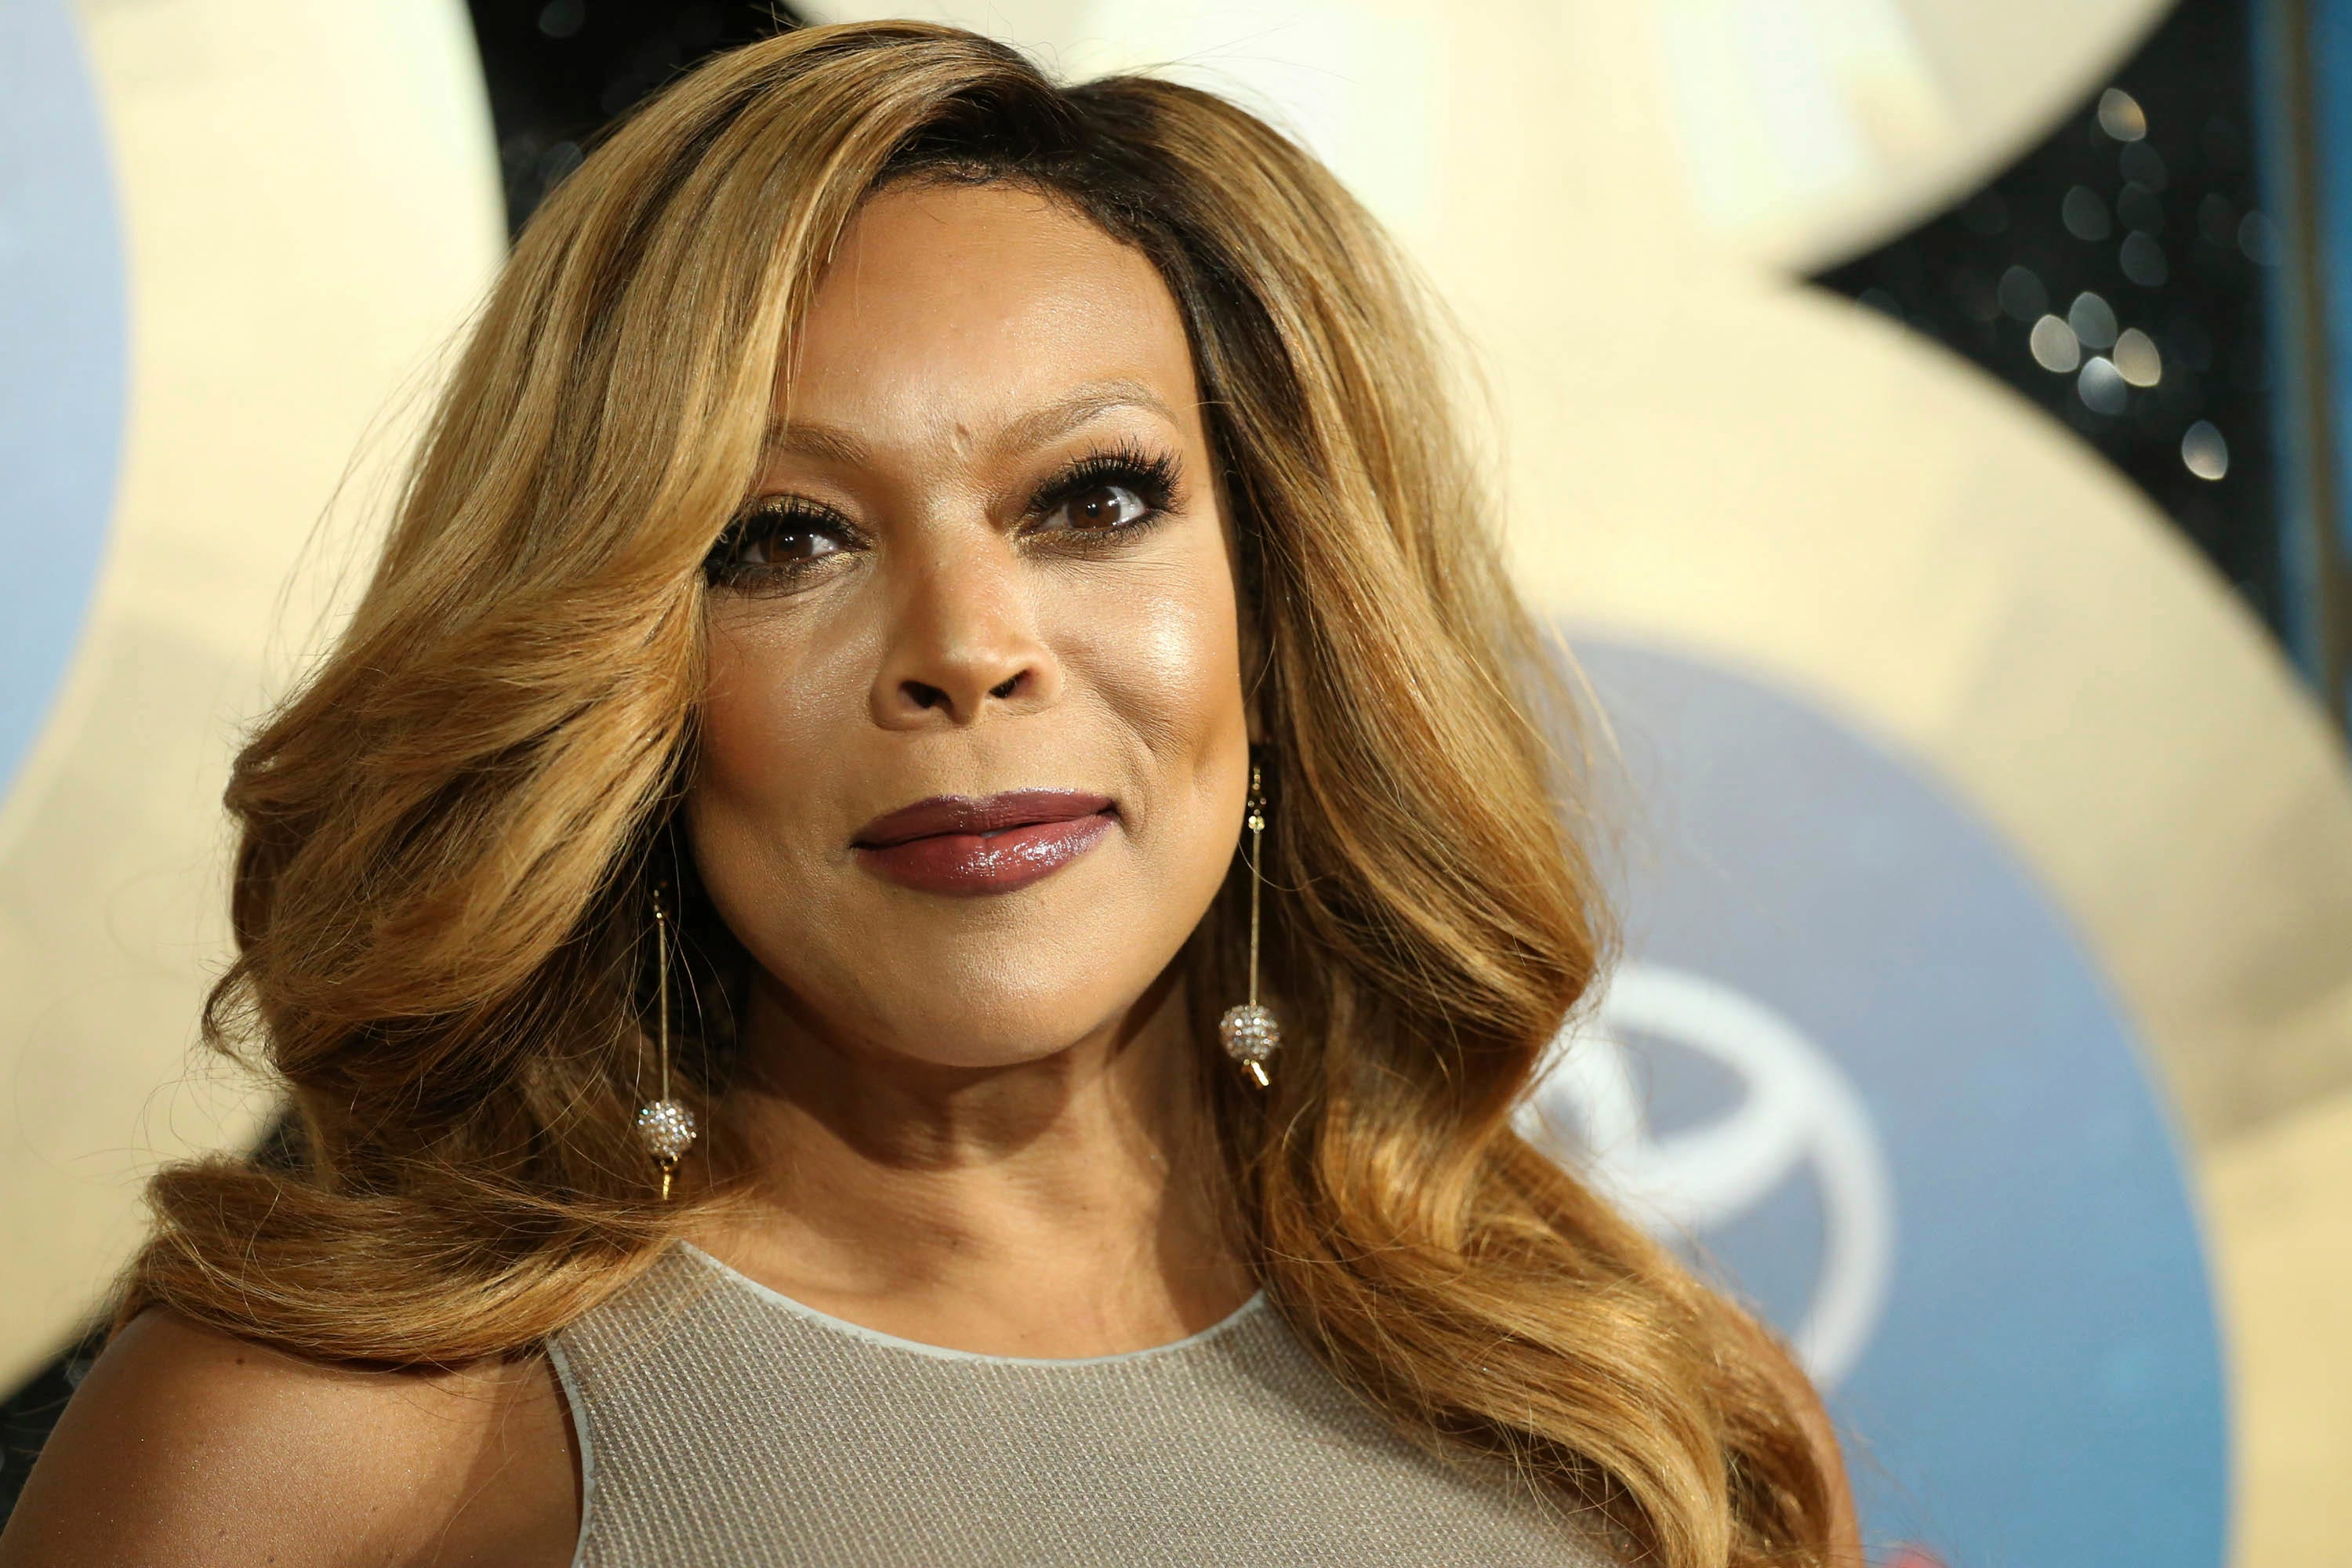 wendy williams returns to tv after taking hiatus to deal